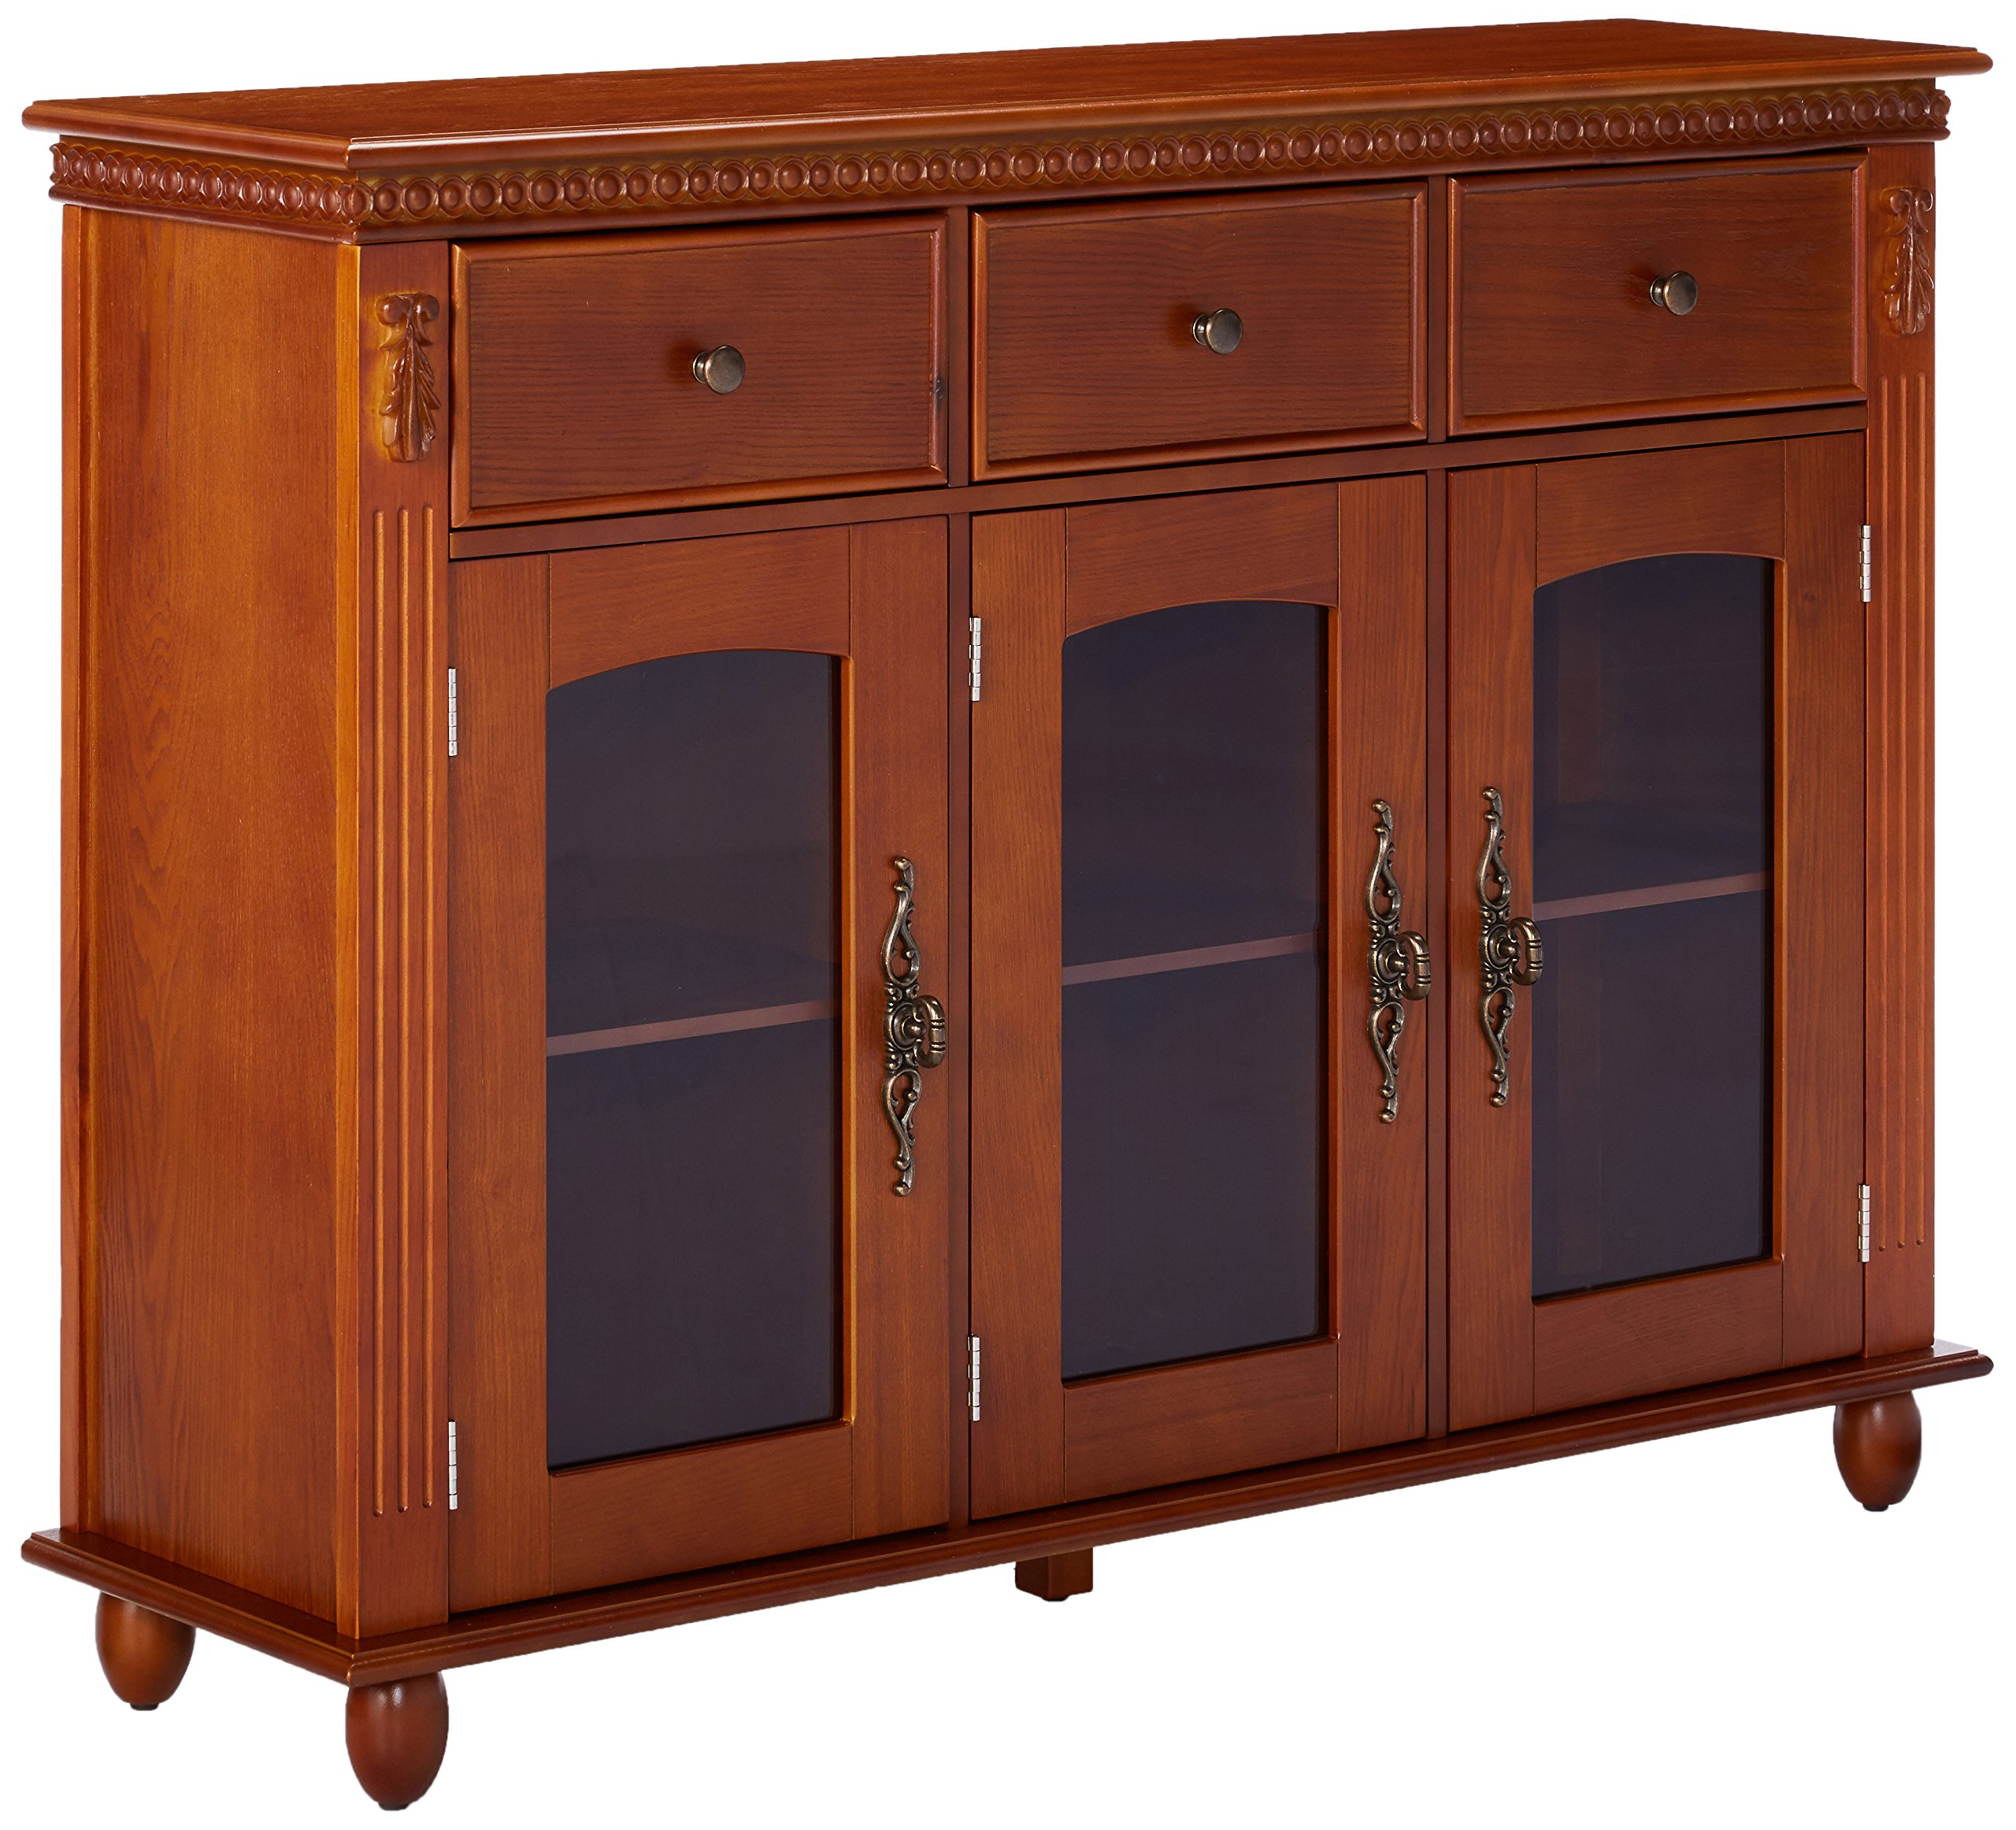 Kings Brand Furniture Wood With Glass Doors Console Sideboard Buffet